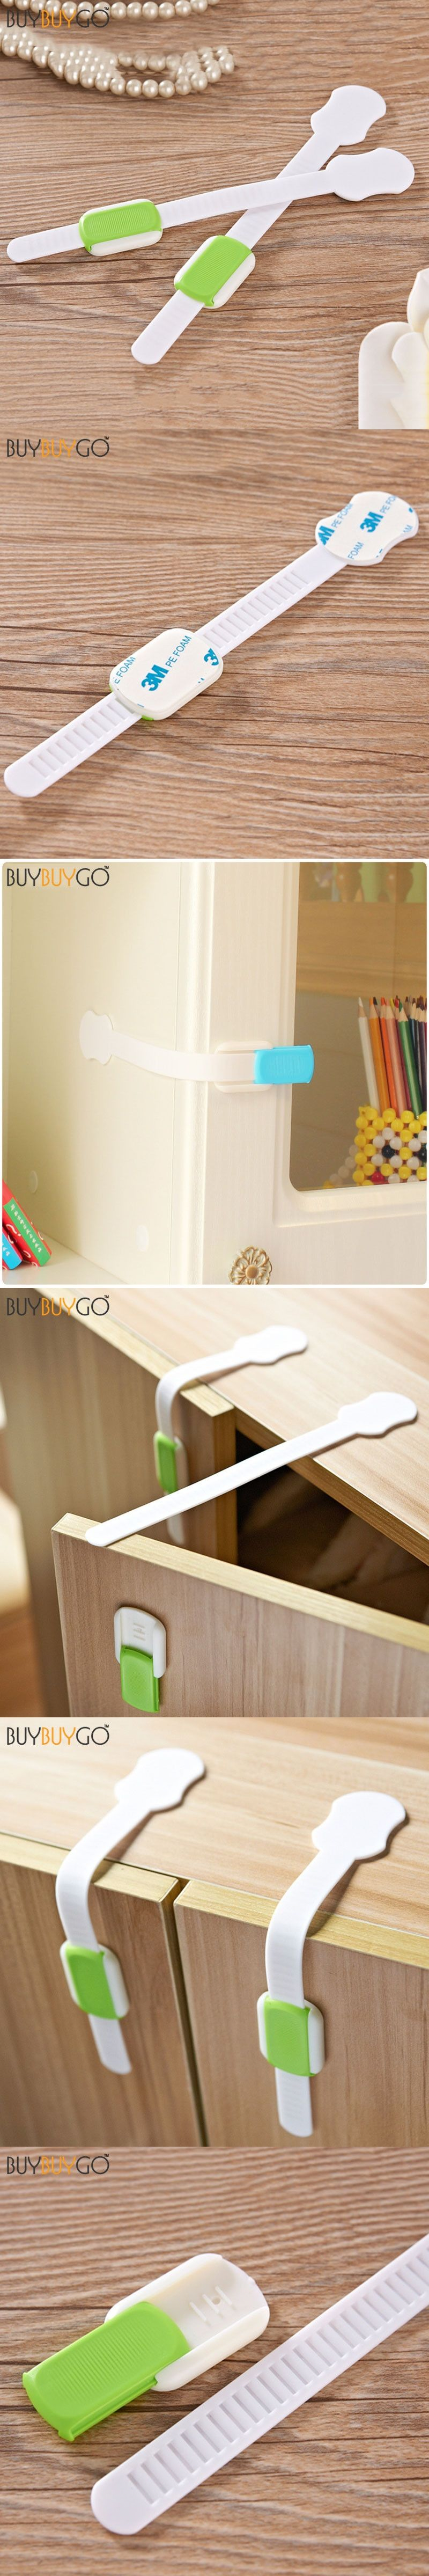 10Pcs Lengthened Bendy Baby Safety Locks Cabinet Drawers